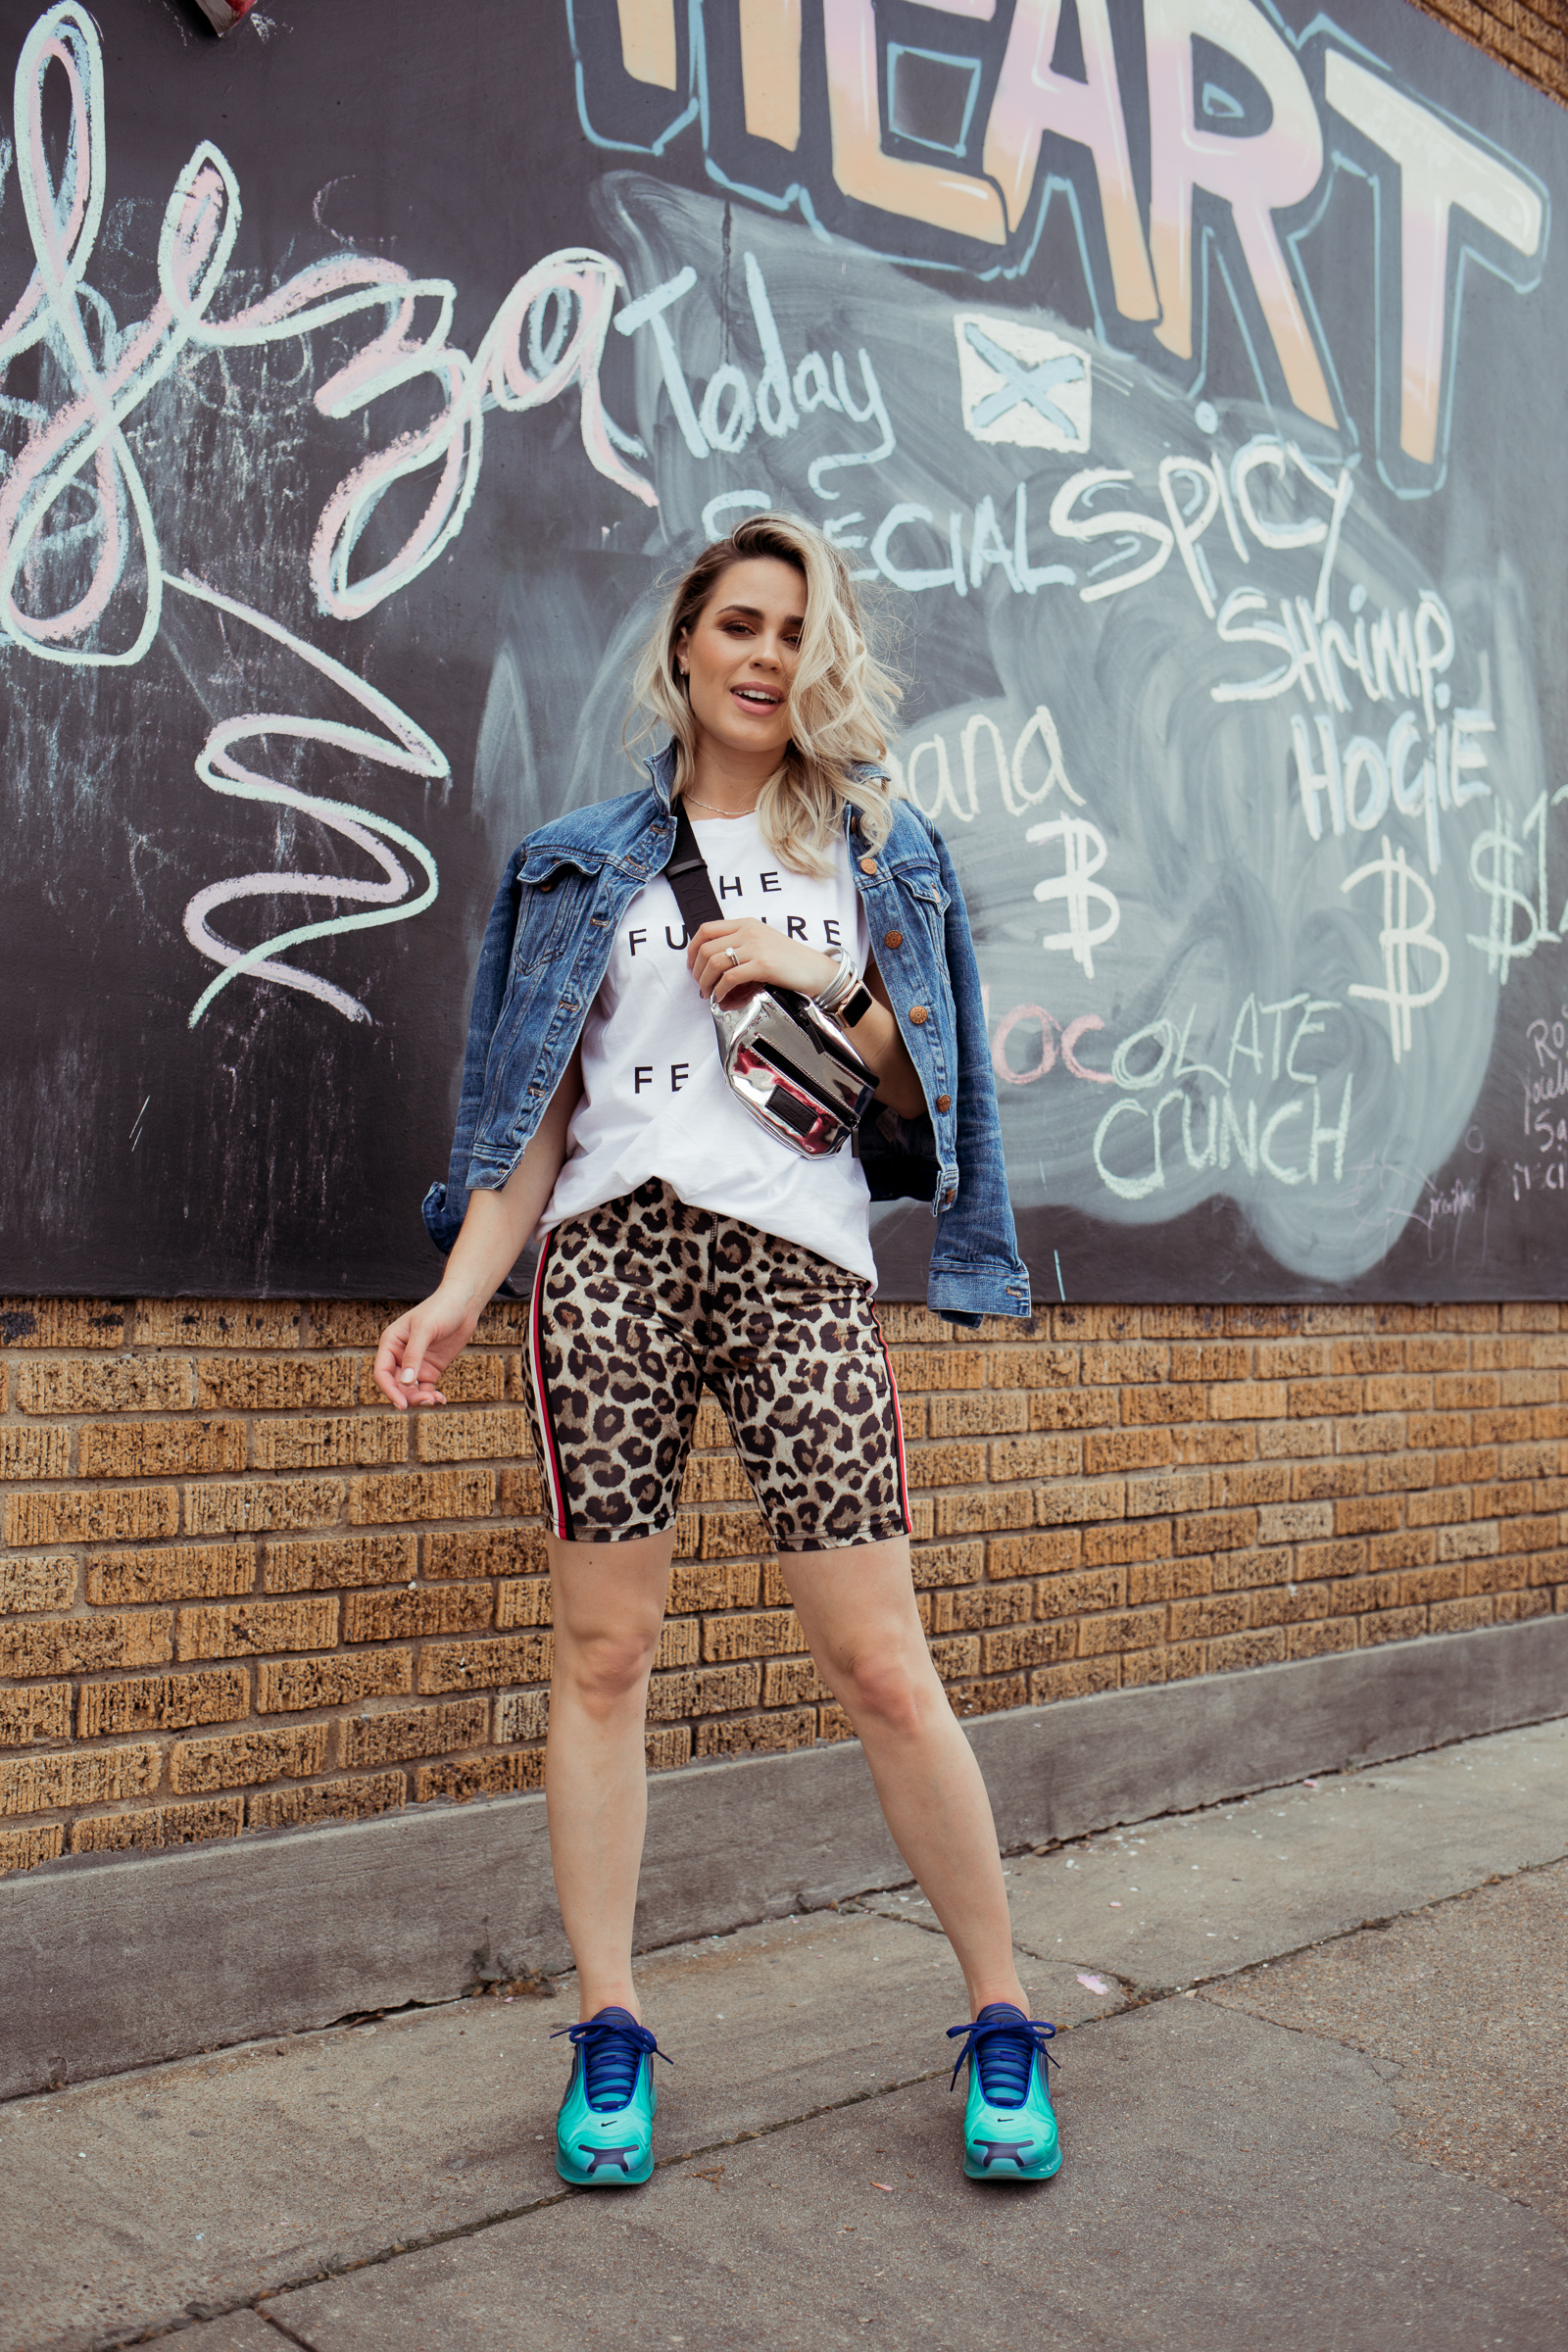 Houston fashion blogger Uptown with Elly Brown talks more about the Sneaker Trend and how to wear them this season